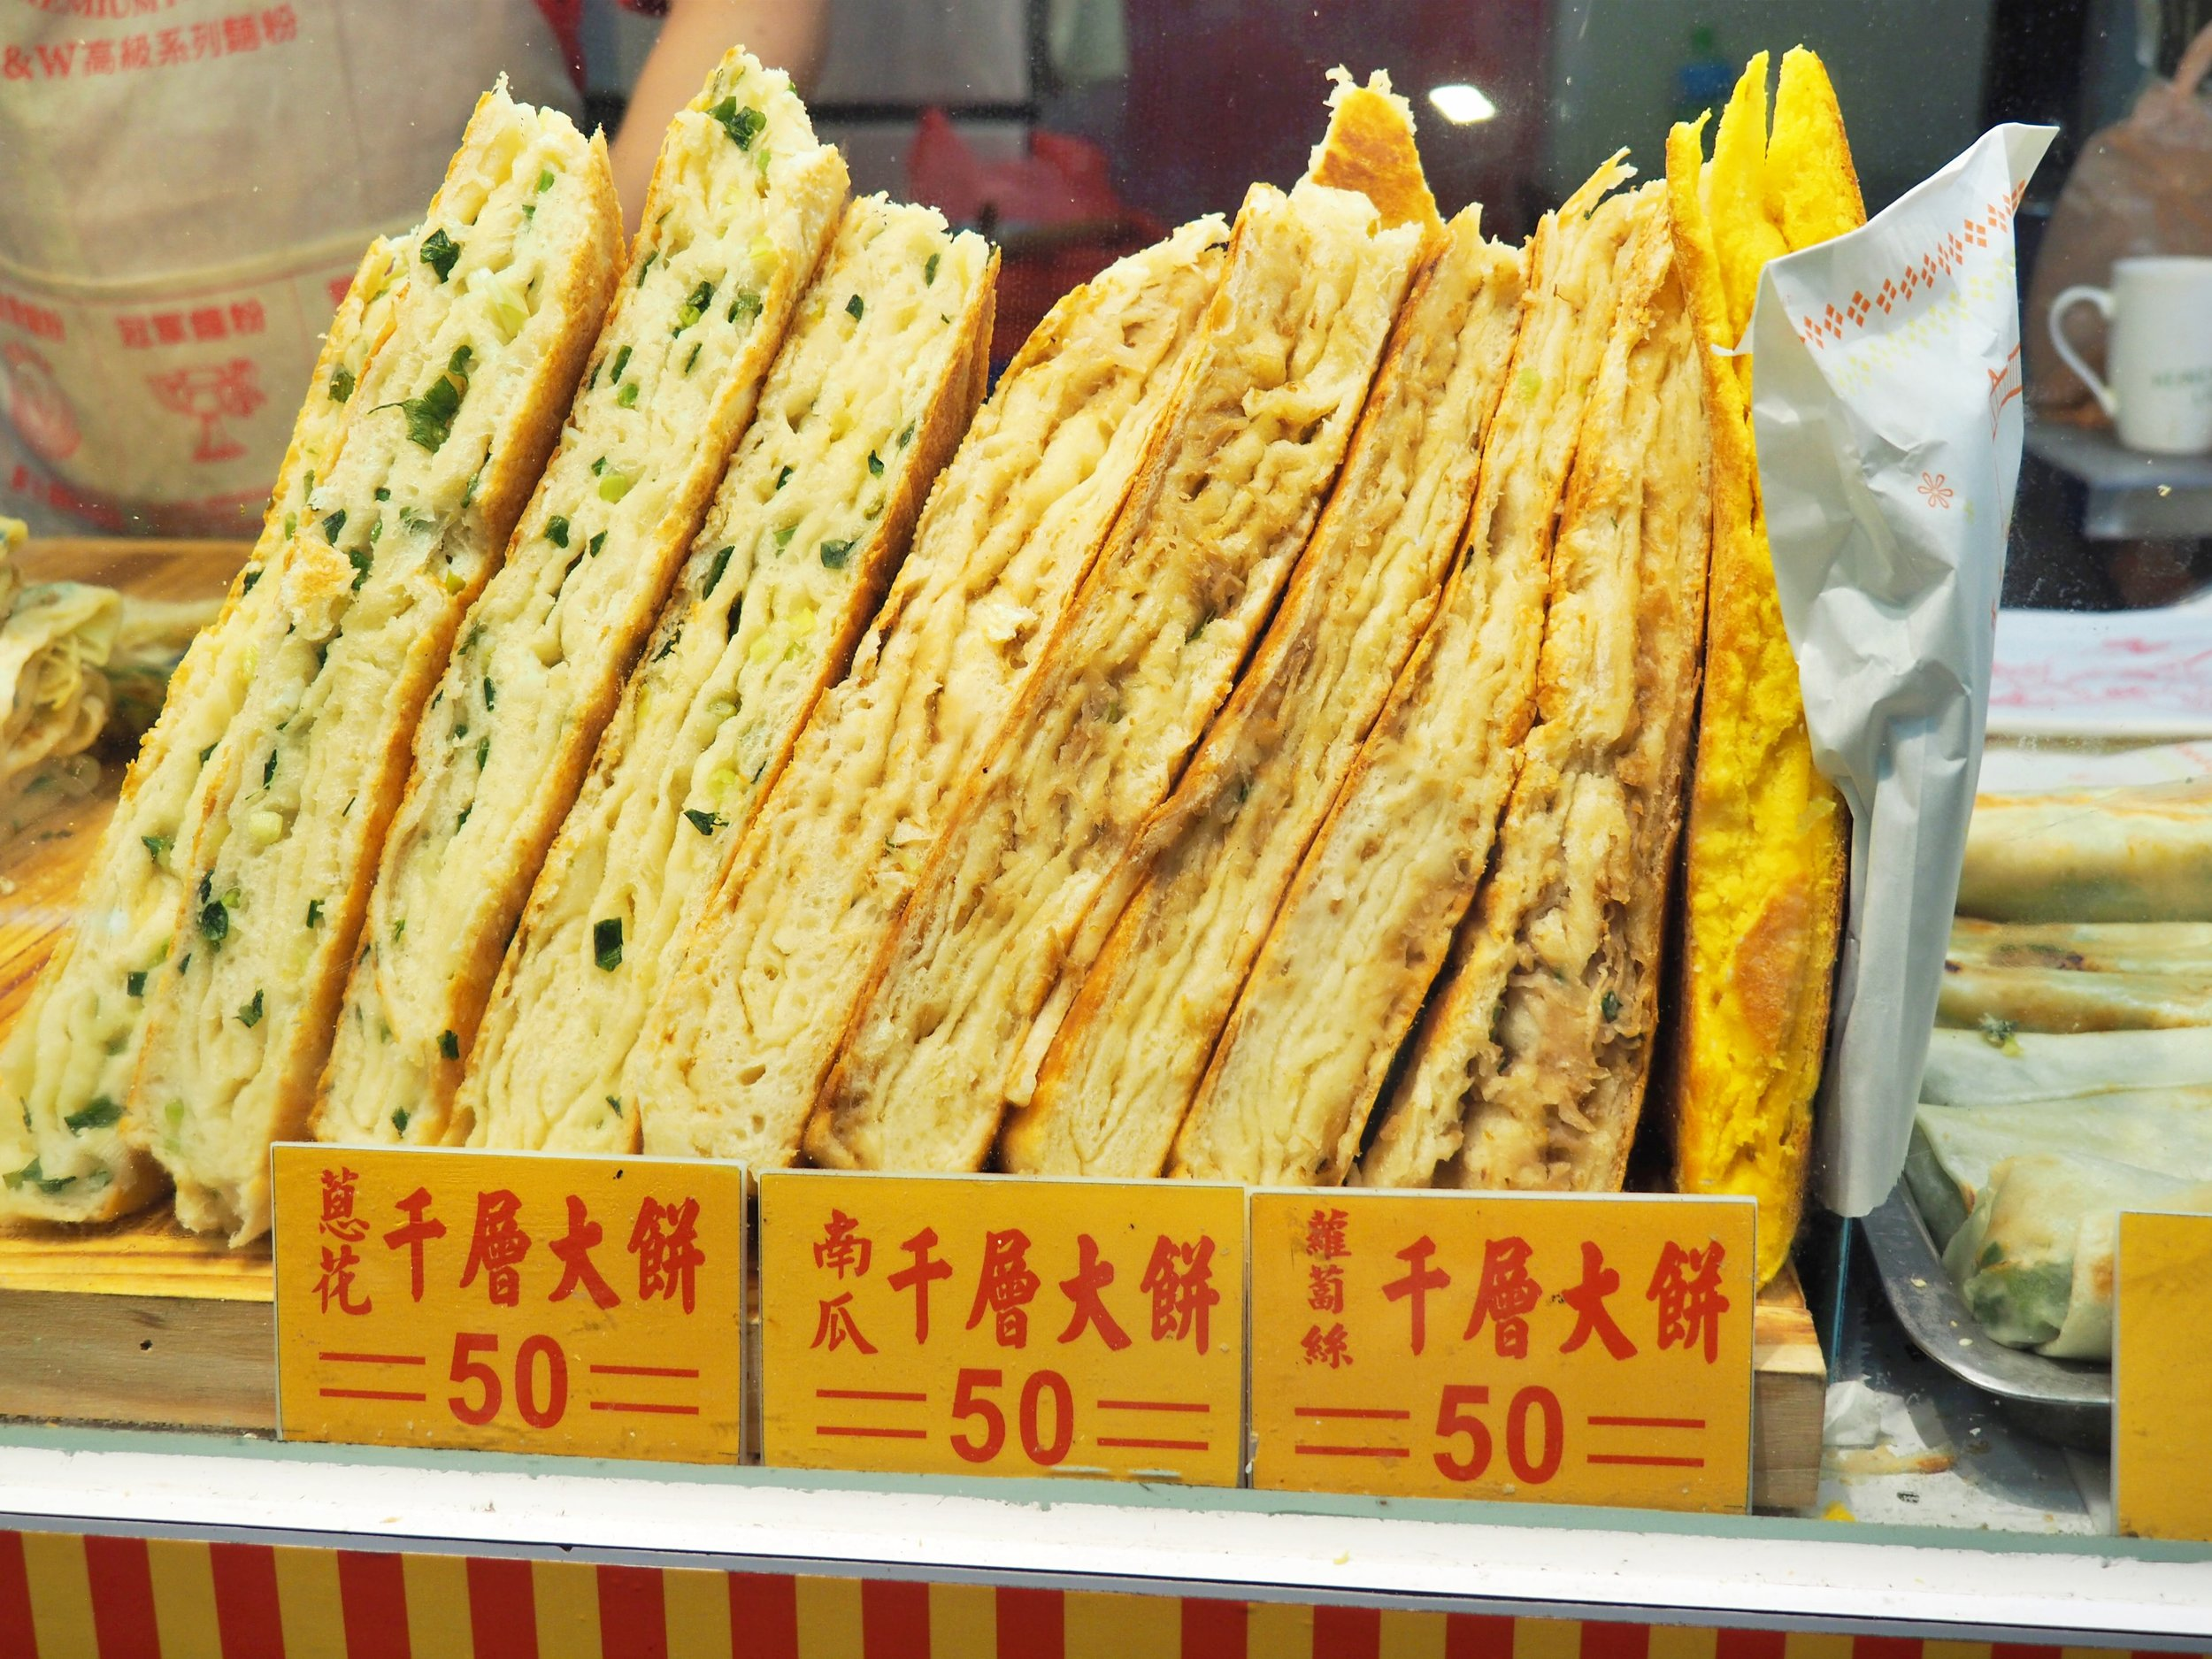 Or this? (Yummy street snacks in Taiwan)